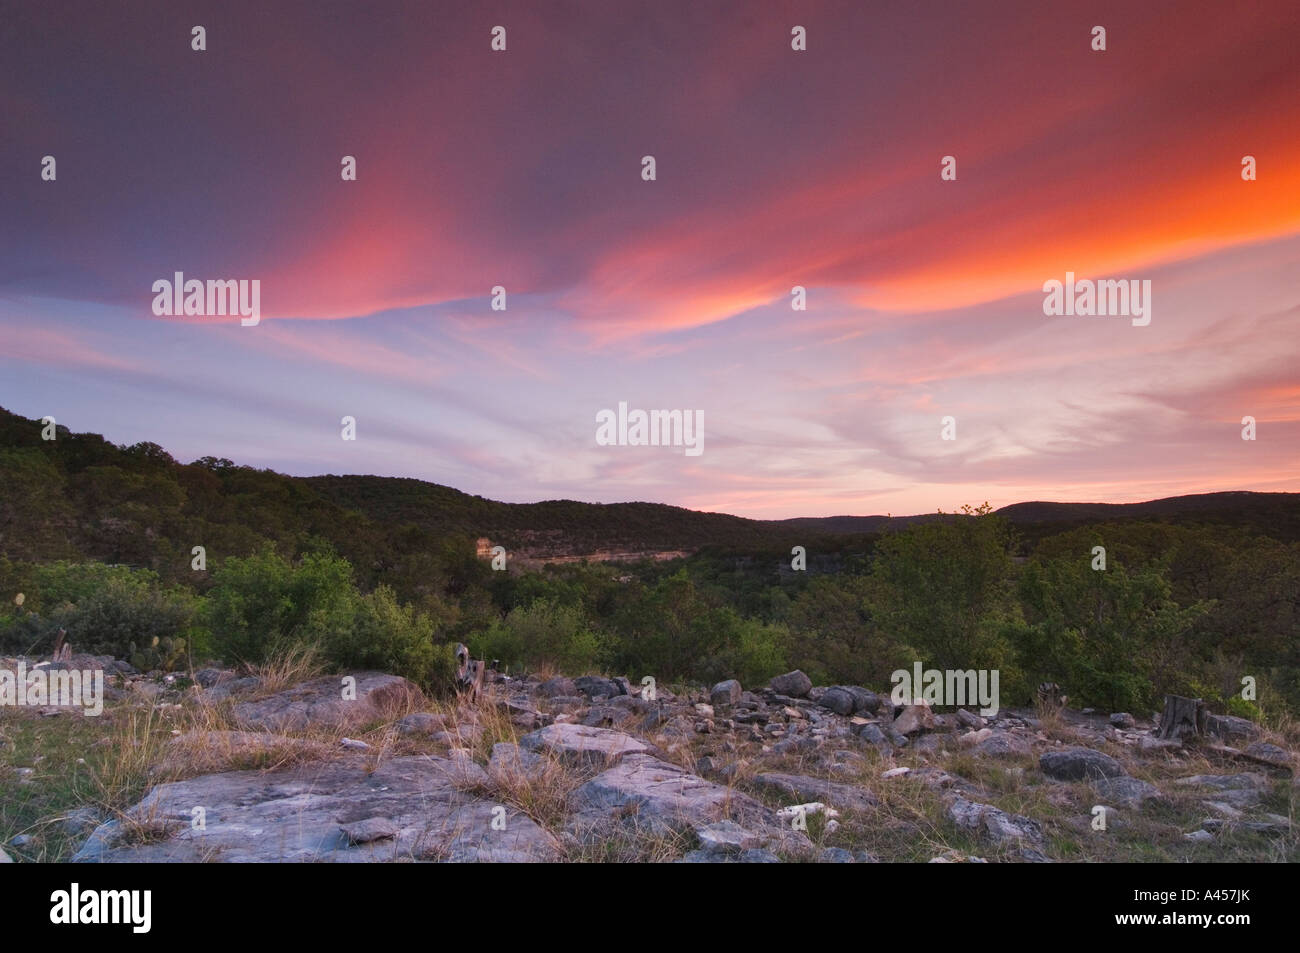 Susnet with colorful clouds over the Hill Country in Texas, USA Stock Photo